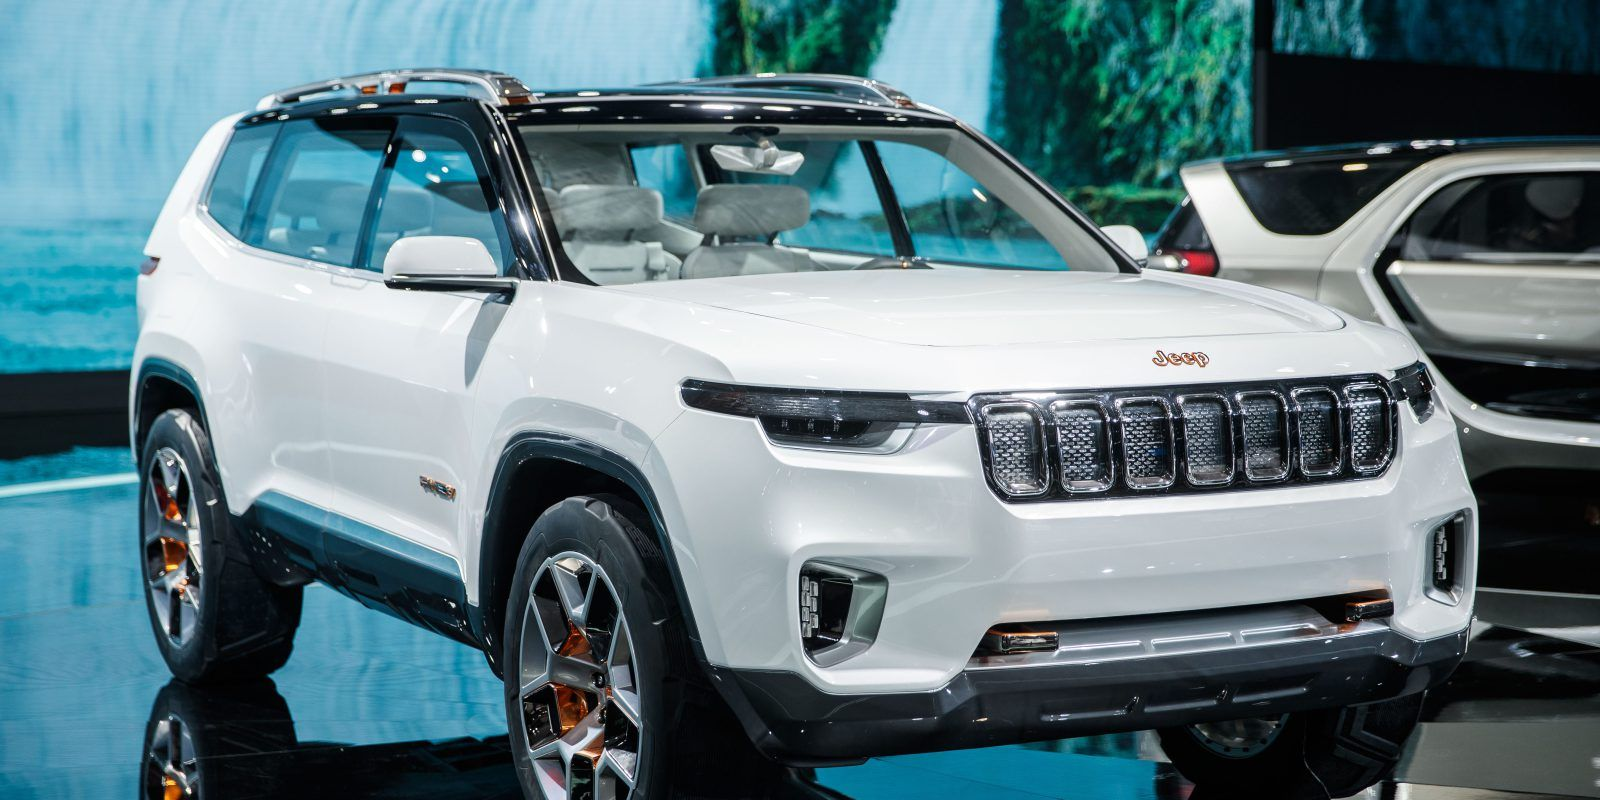 Jeep S Plug In Hybrid Suv Concept Debuts With A 40 Miles All Electric Range Electrek Jeep Concept Jeep Grand Jeep Grand Cherokee